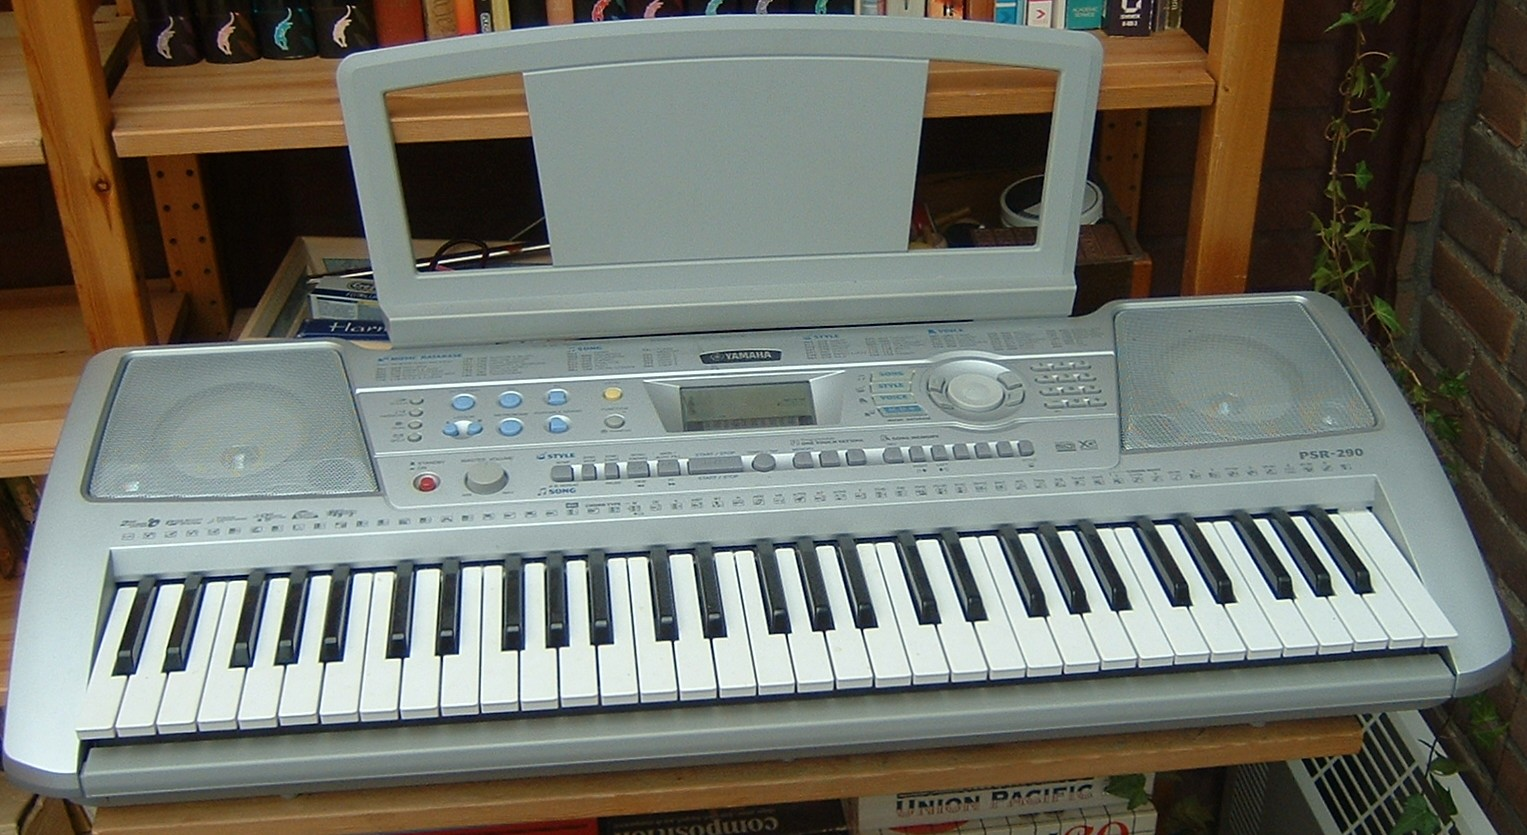 https://i1.wp.com/upload.wikimedia.org/wikipedia/commons/2/22/YamahaKeyboard.jpg